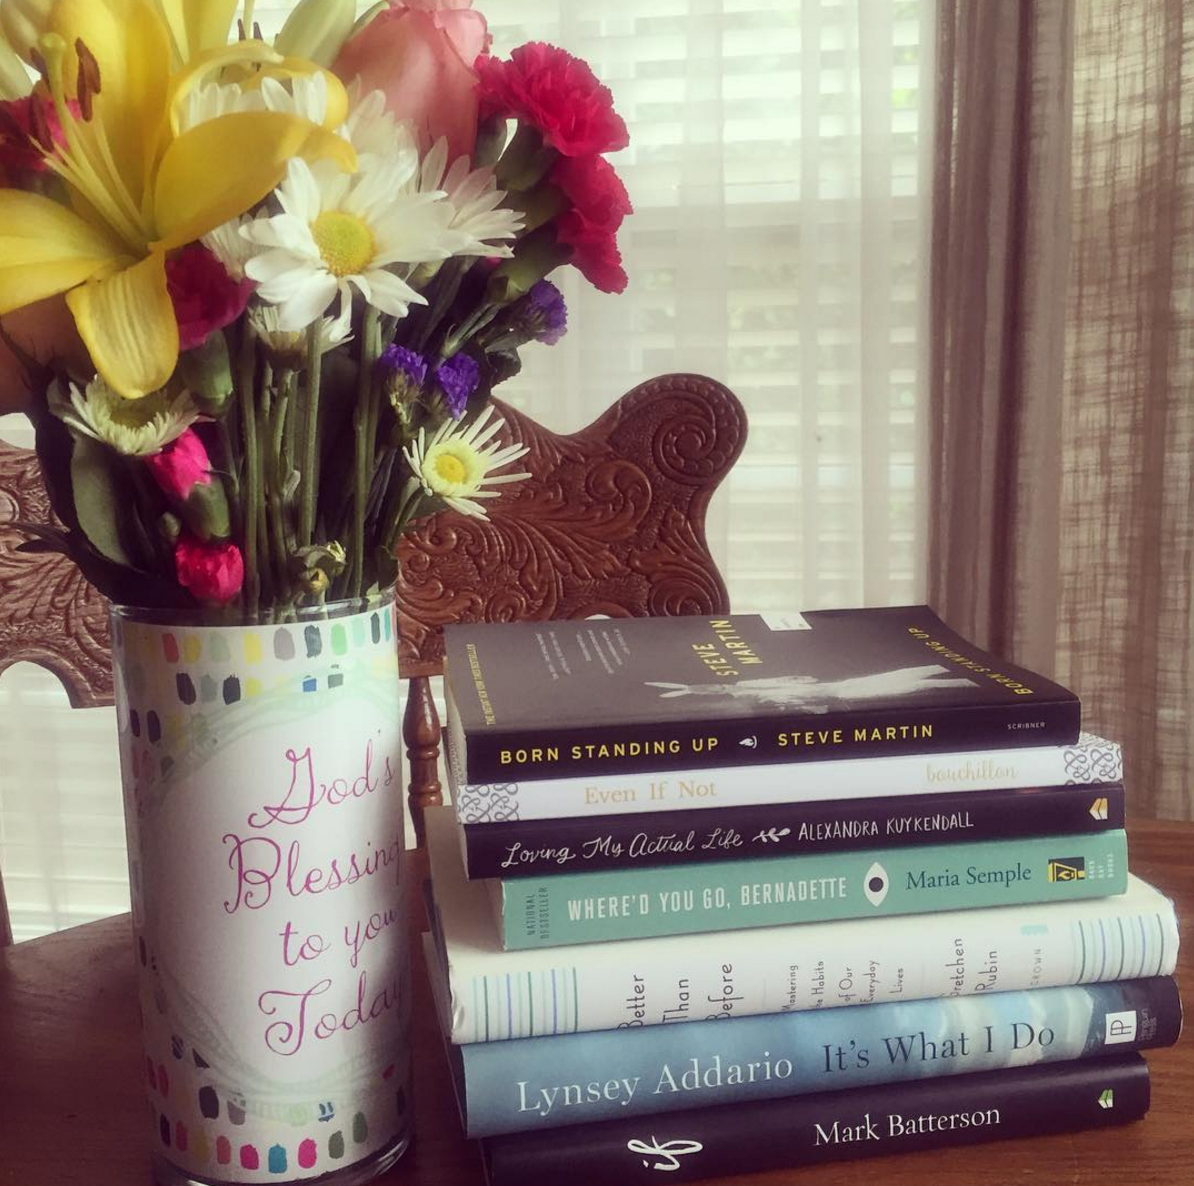 The 8 Books I Read Last Week + What I'm Reading This Week